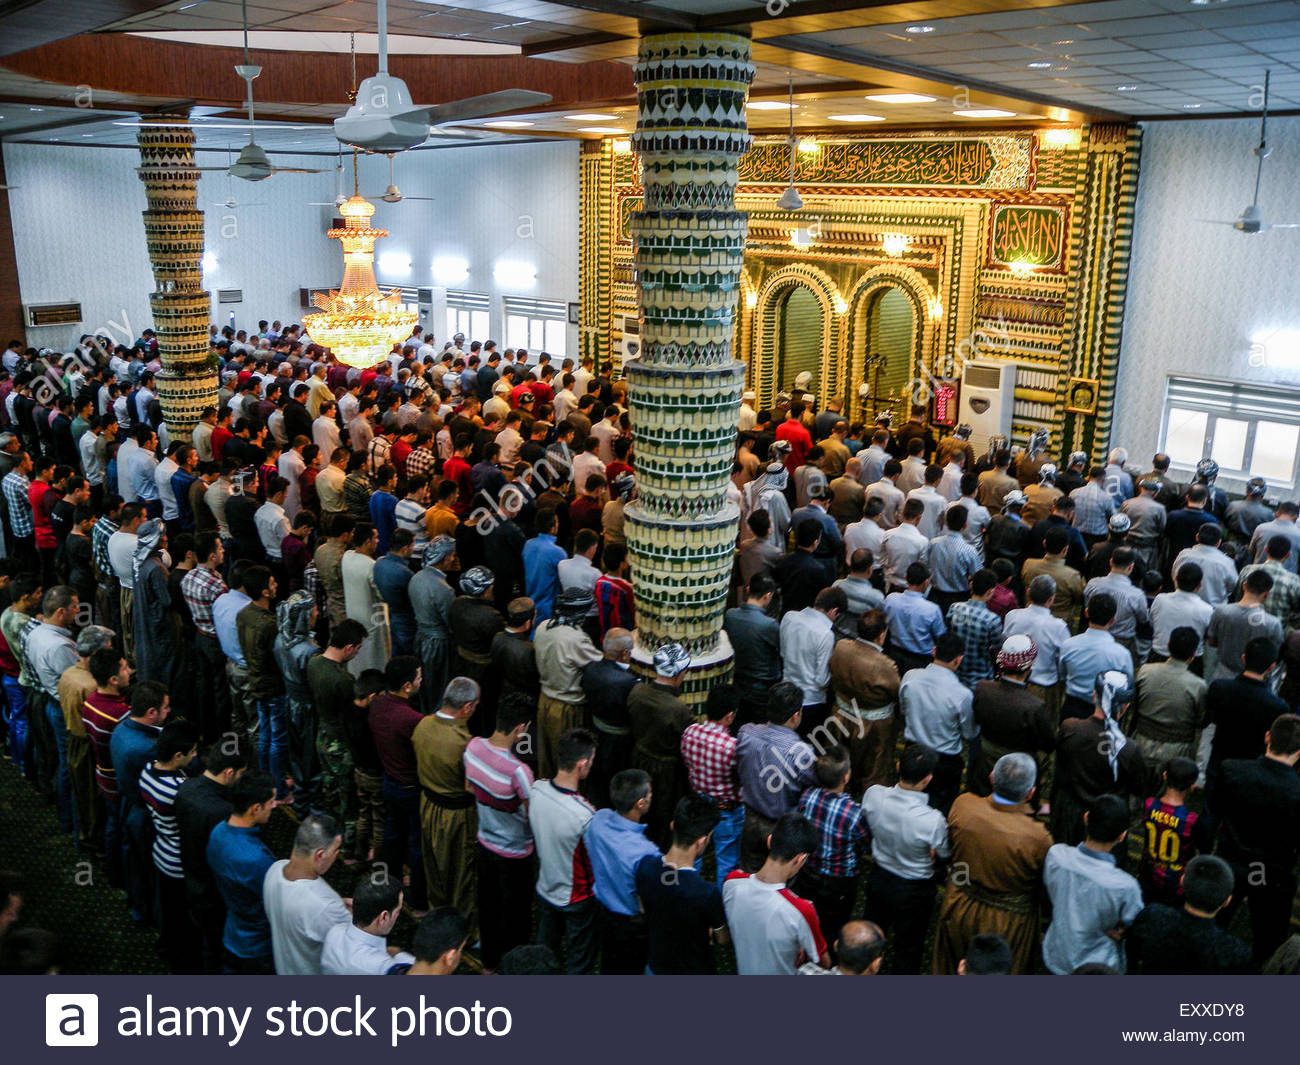 Cool Iraq Eid Al-Fitr Decorations - erbil-iraq-july-17th-2015-crowd-pray-in-mosquemuslims-celebrated-the-EXXDY8  You Should Have_414598 .jpg